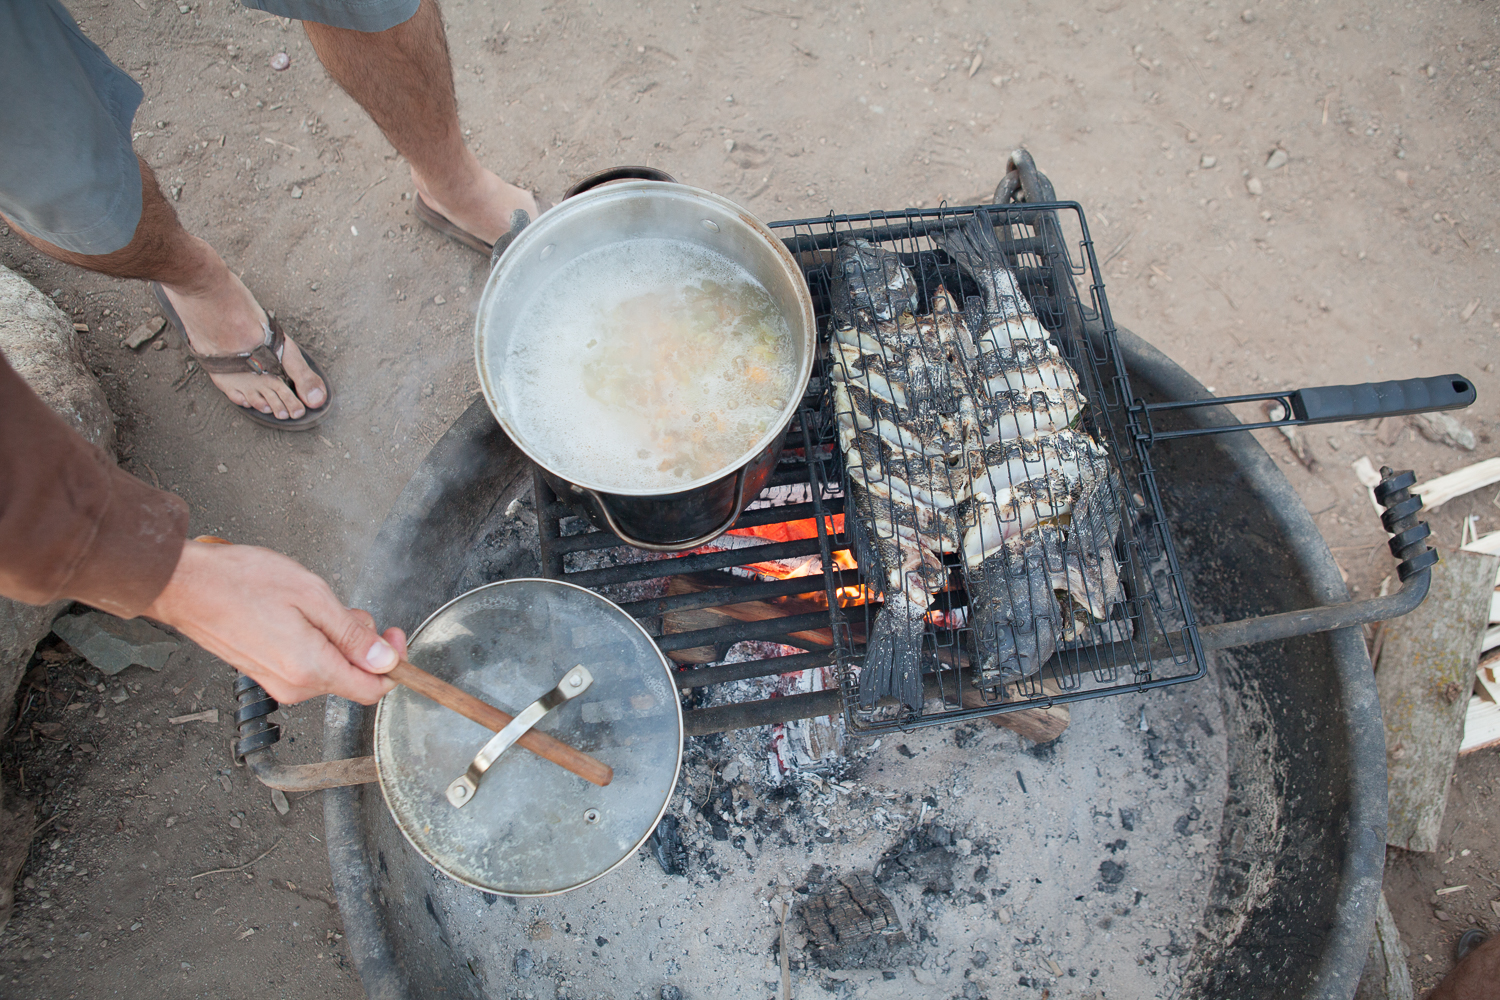 Good eats on the campfire after a successful day spearfishing.